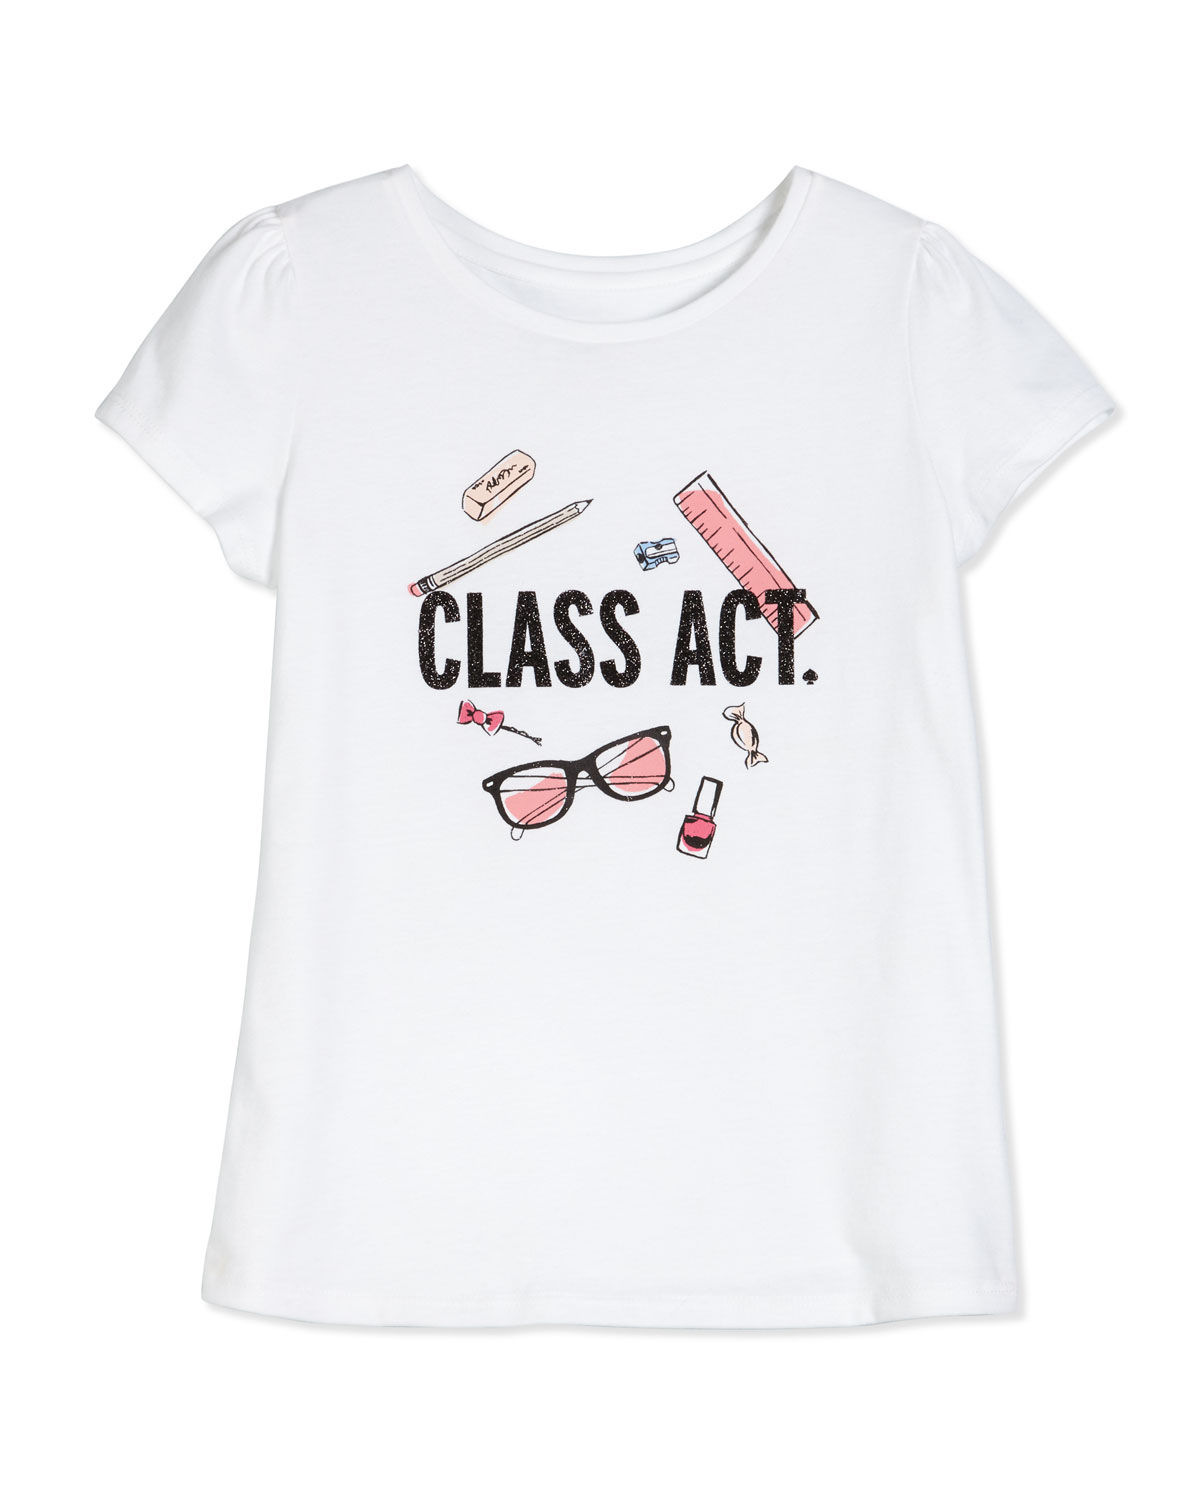 class act cotton jersey tee, white, size 2-6